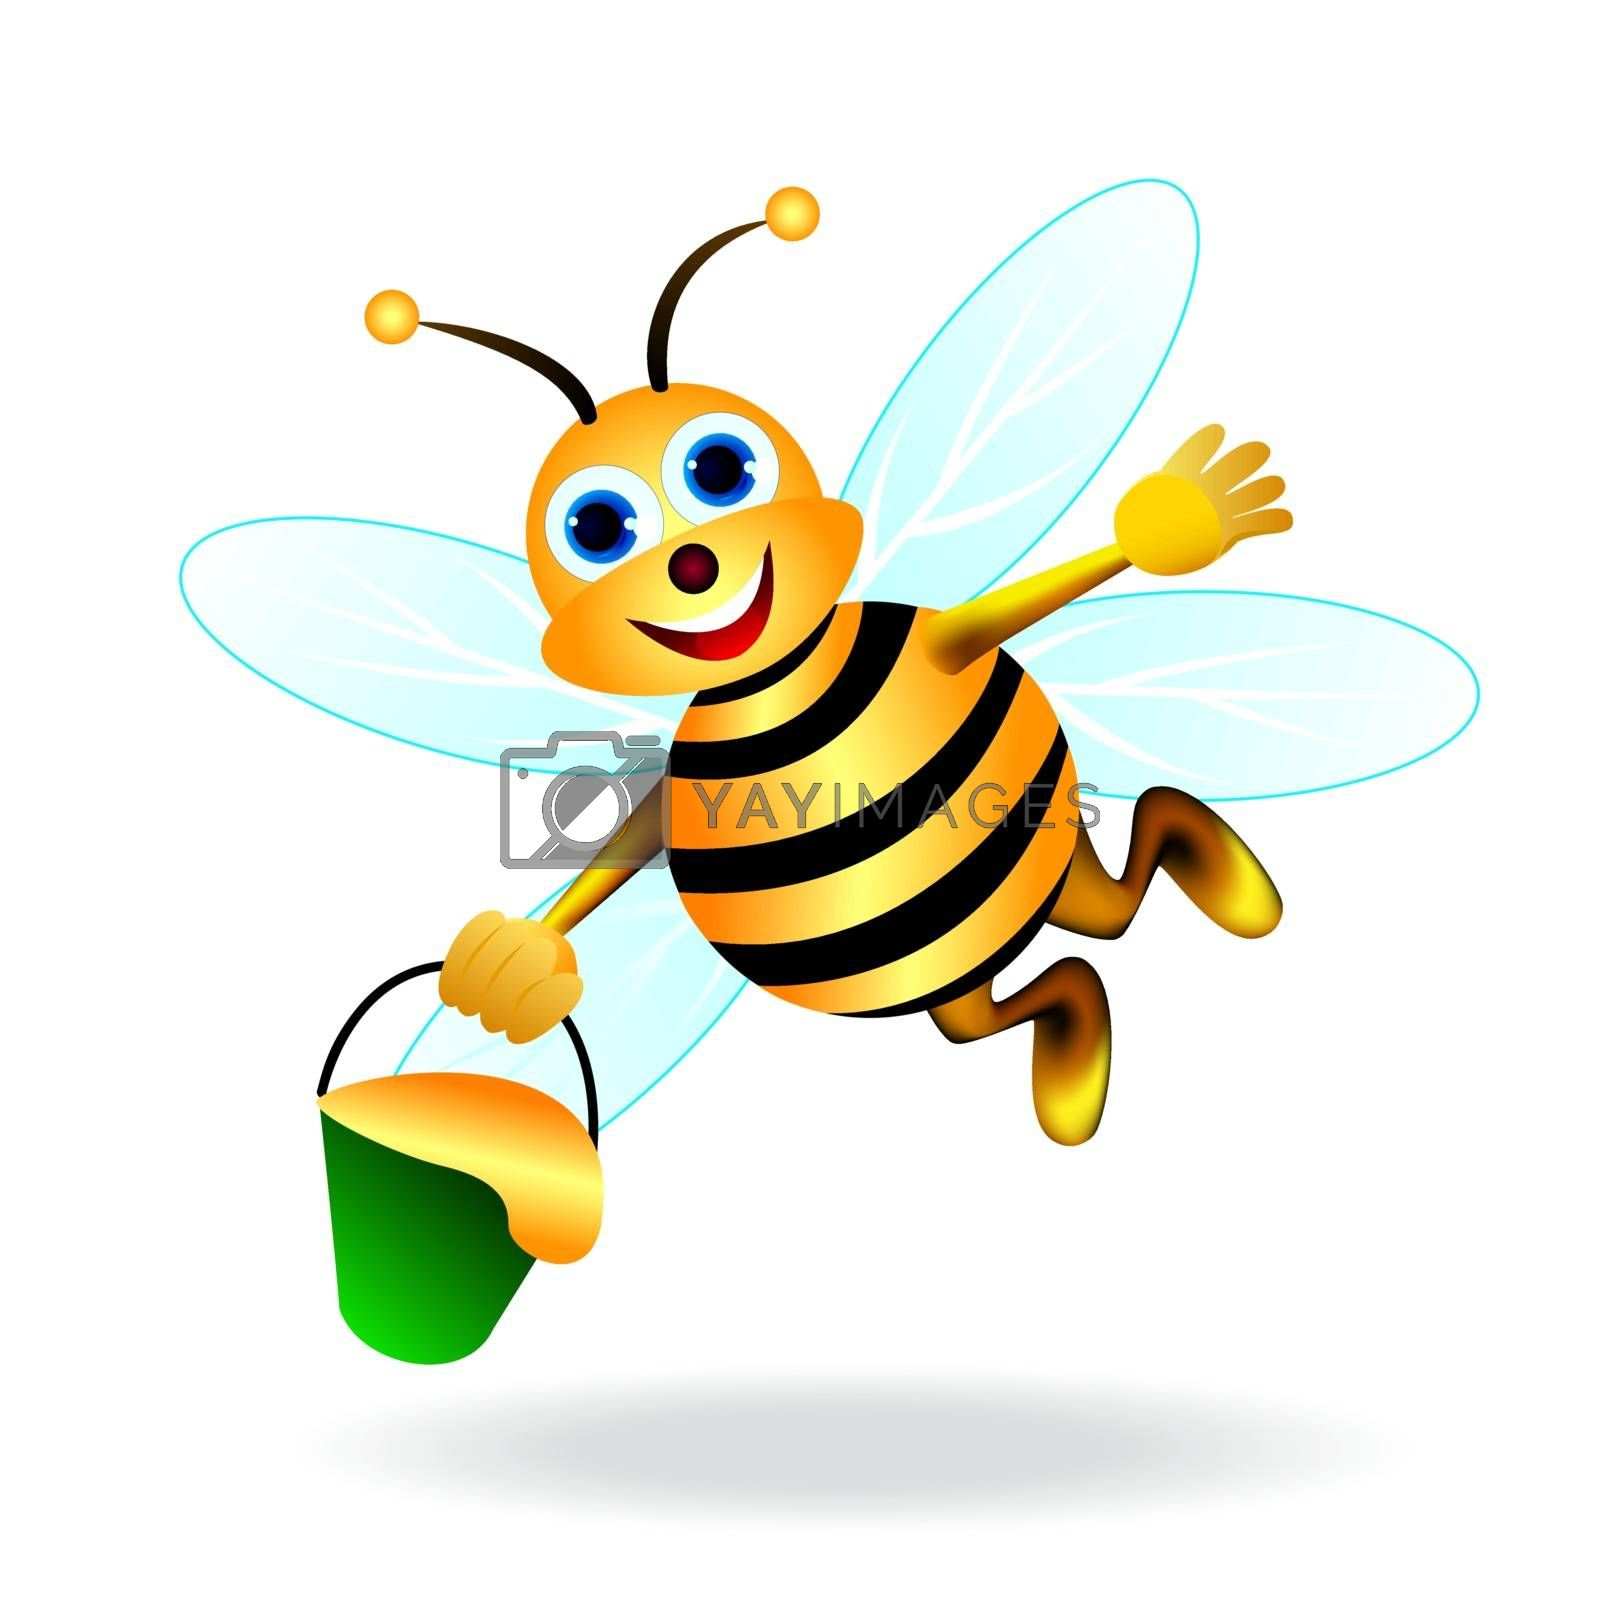 Flying bee with a bucket of honey in his hand.